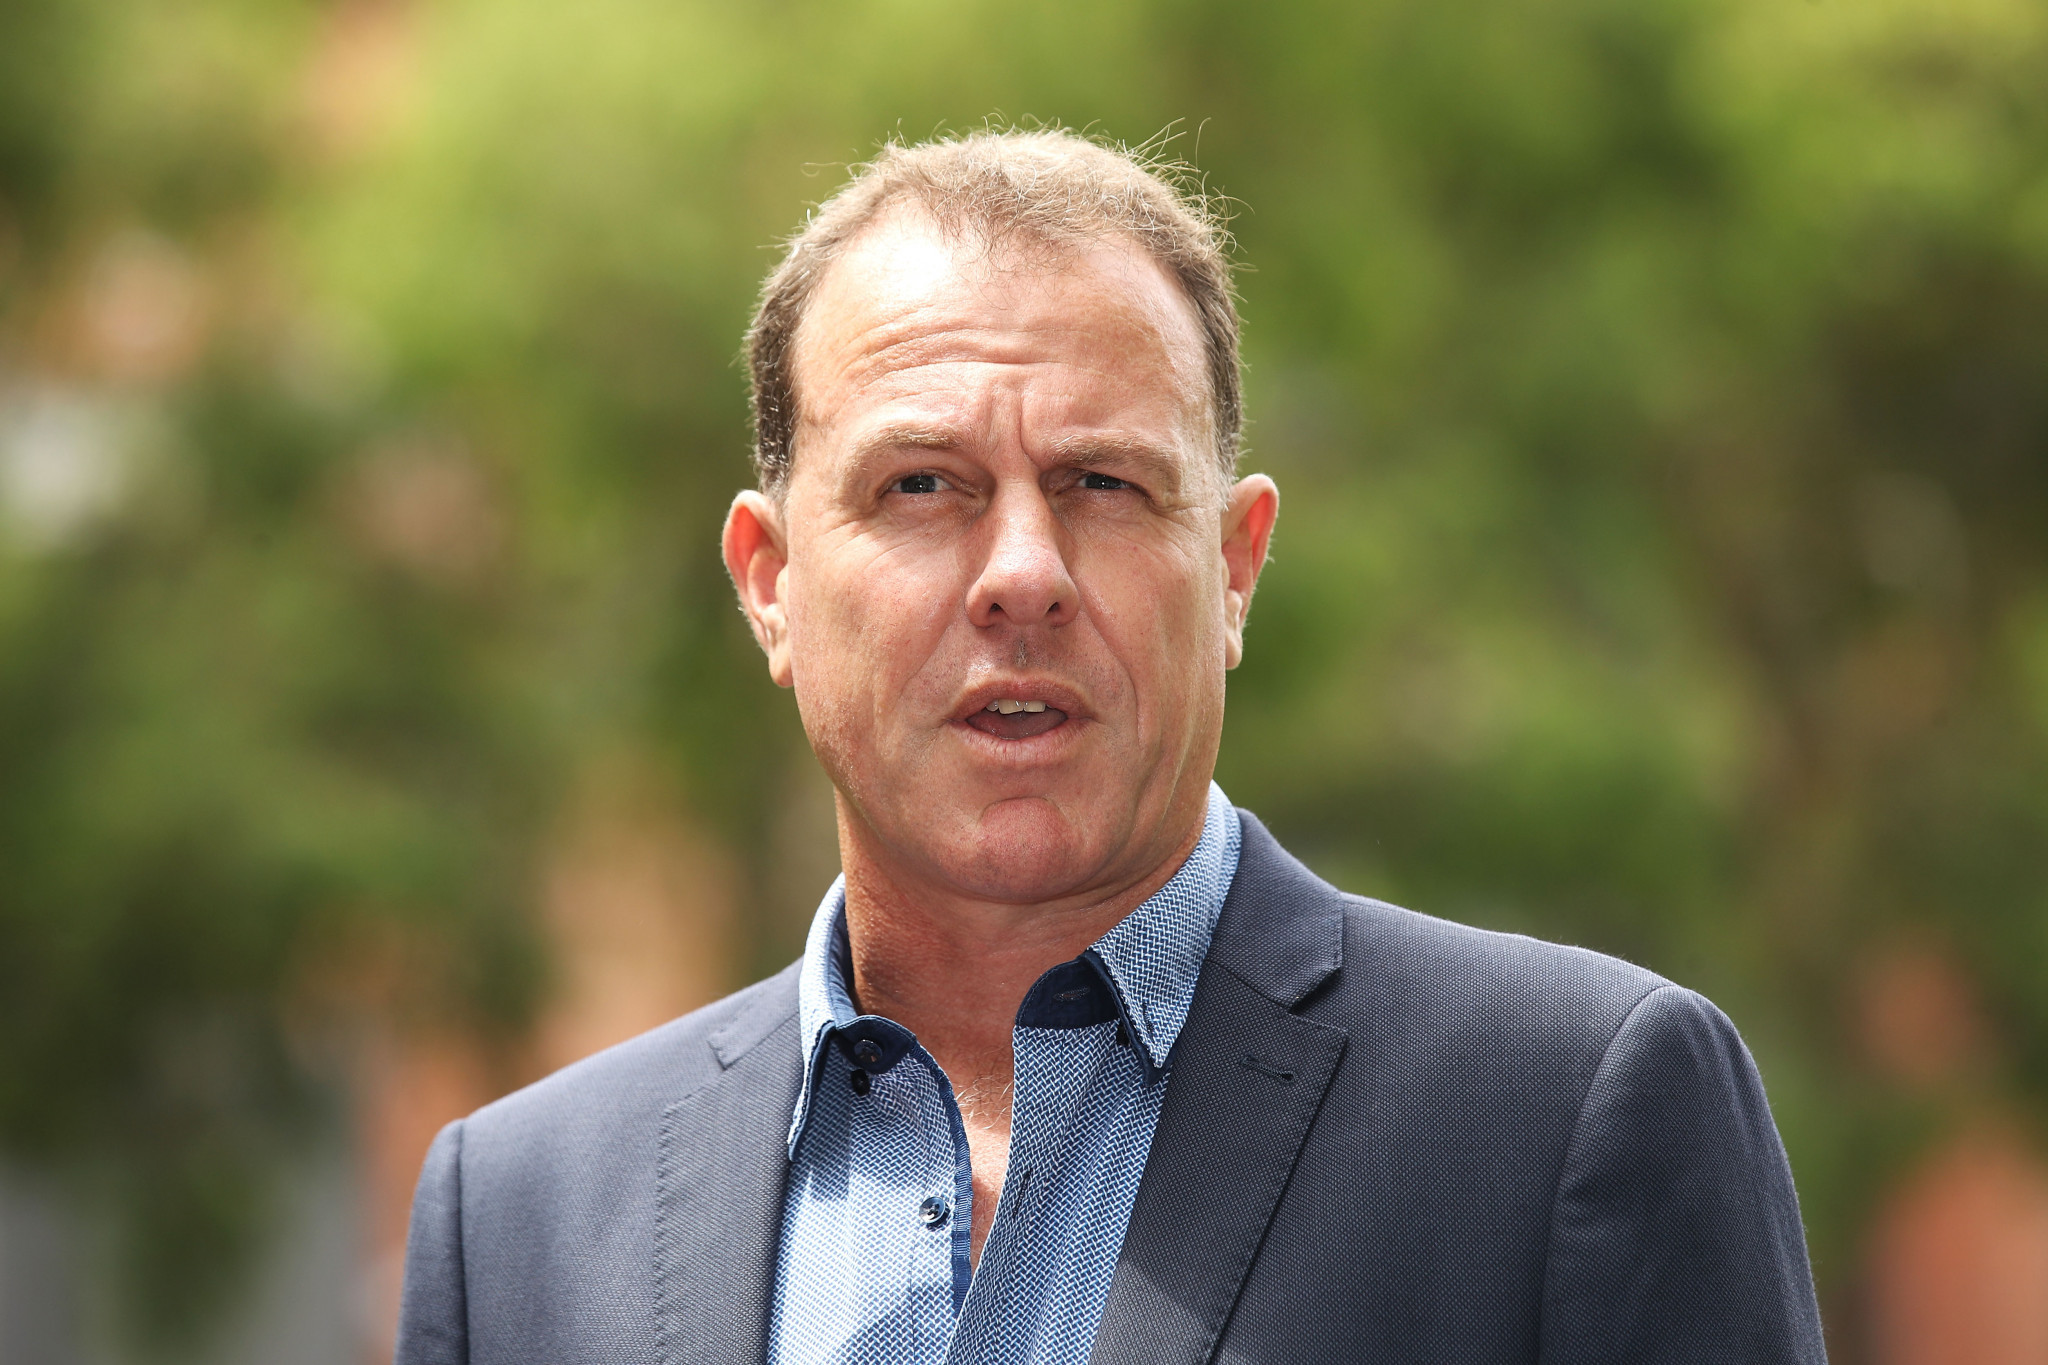 Australia's preparations for this year's FIFA Women's World Cup have been plunged into crisis after the country's football association sacked head coach Alen Stajcic ©Getty Images